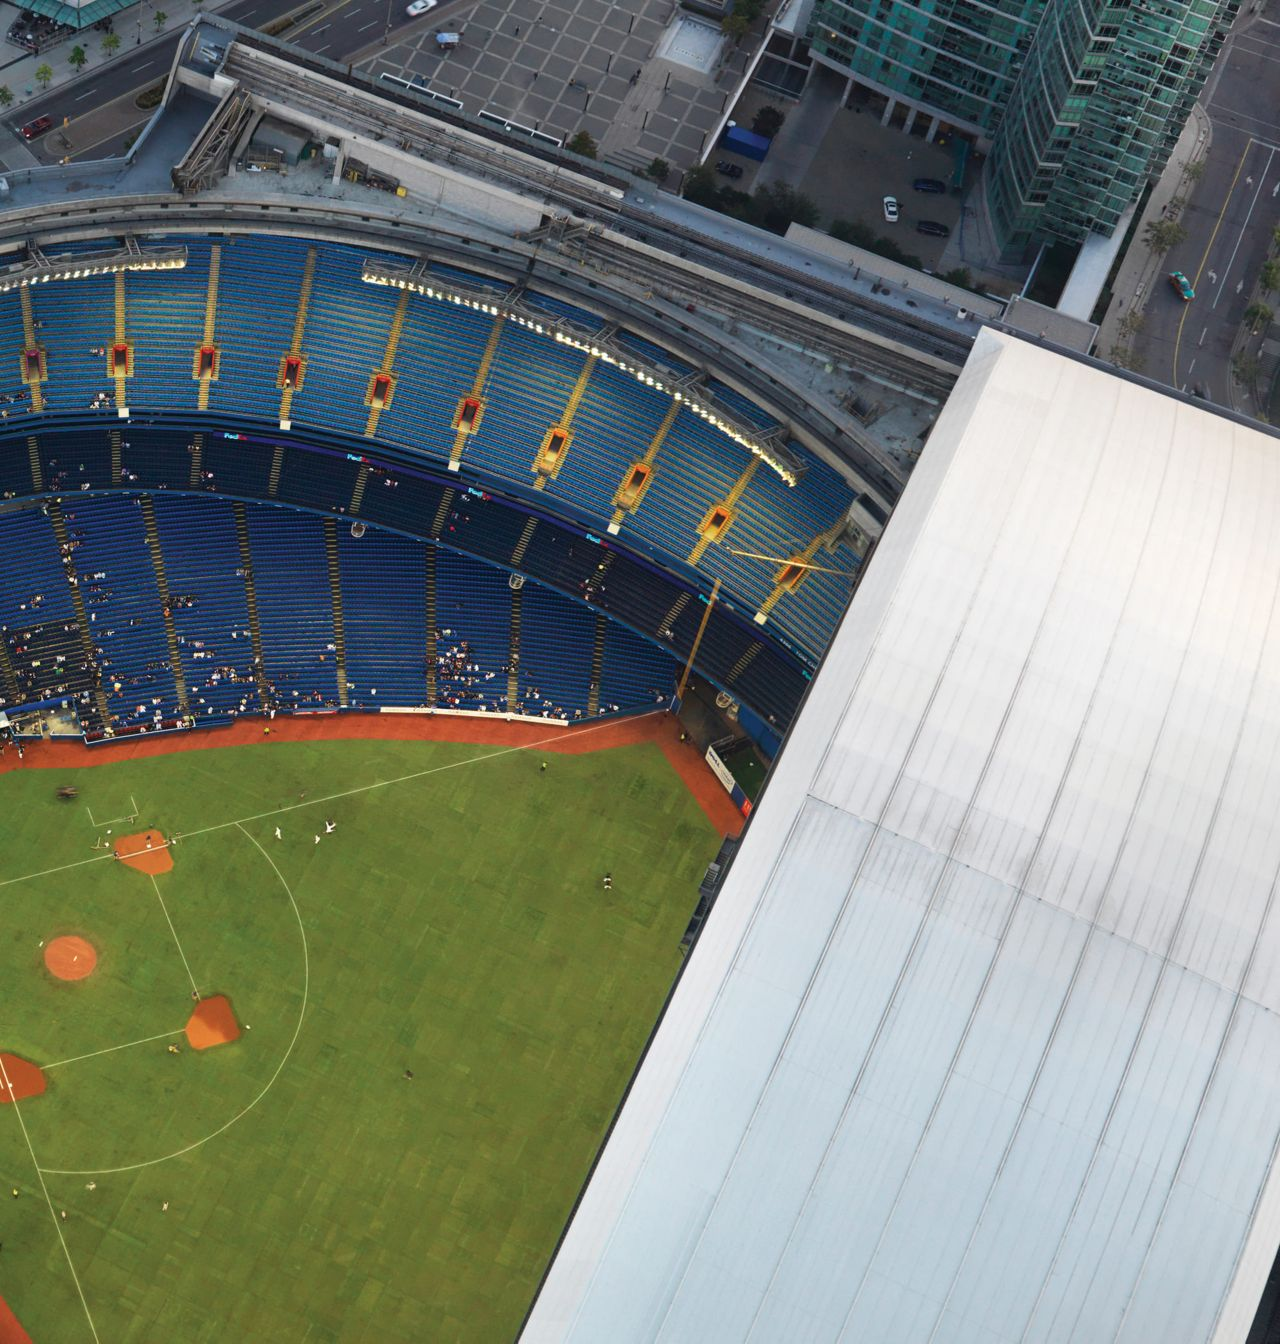 Rogers Centre Aerial View with Roof Open